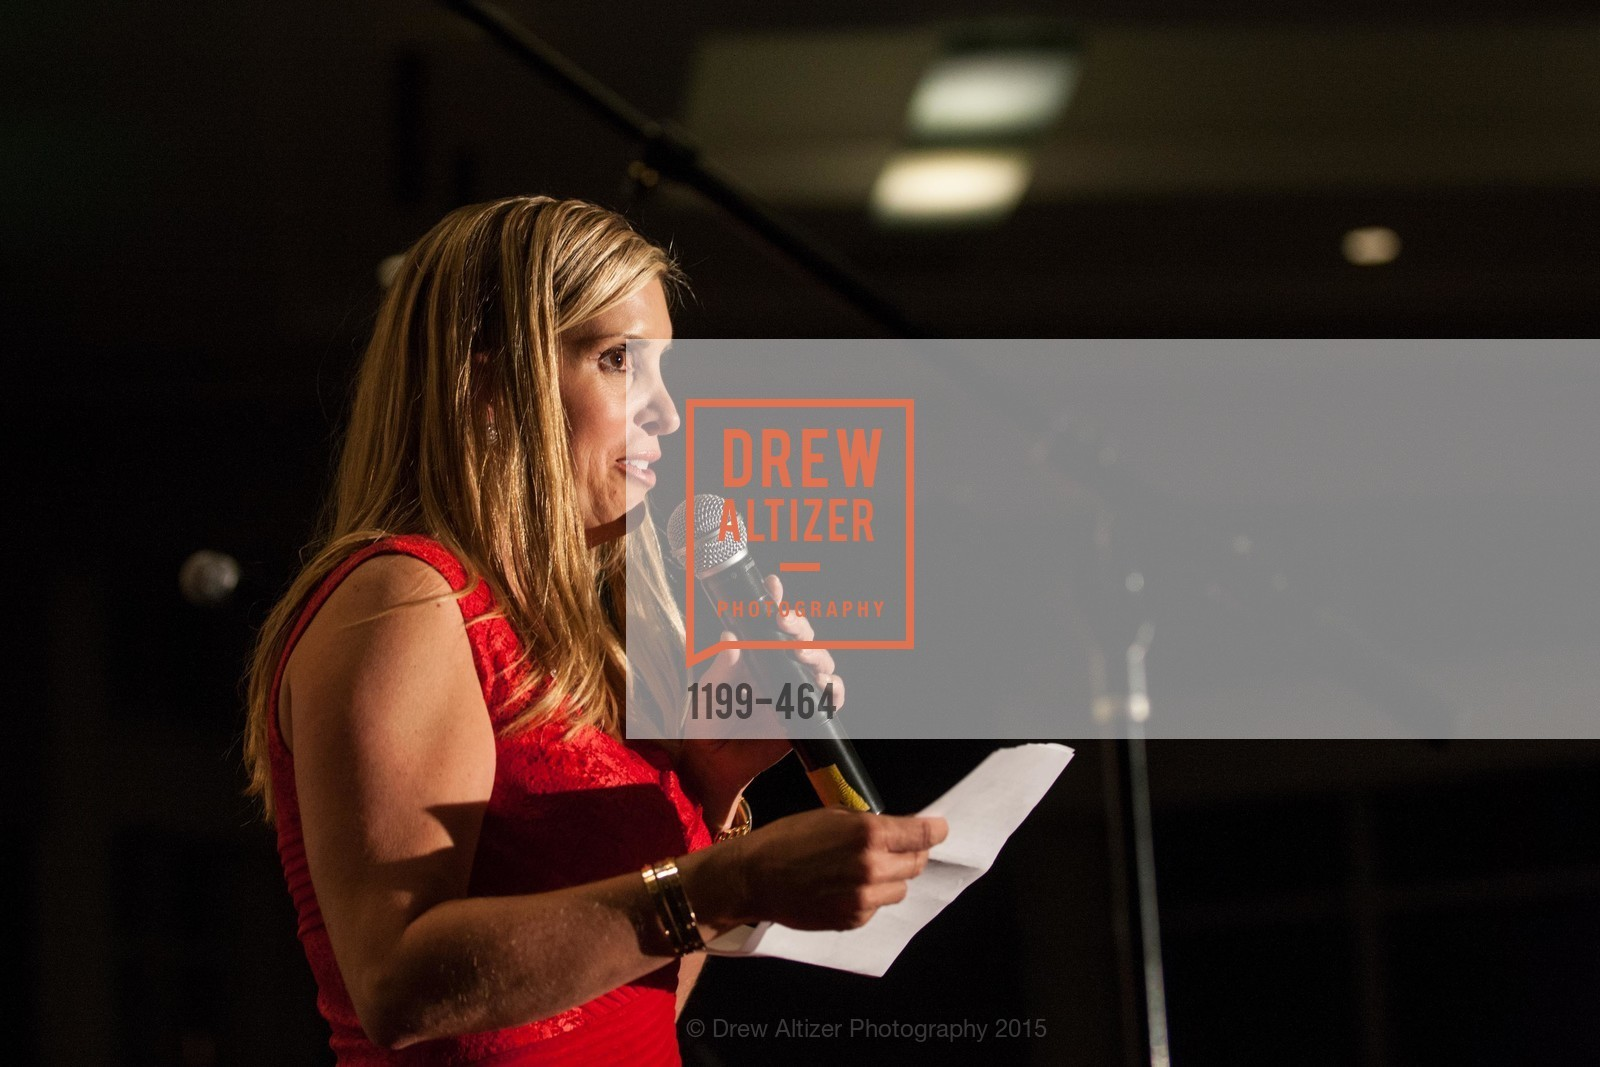 Jessica Malek, Operation Smile Presents THE SAN FRANCISCO 2015 SMILE GALA, InterContinental Hotel, November 7th, 2015,Drew Altizer, Drew Altizer Photography, full-service event agency, private events, San Francisco photographer, photographer California